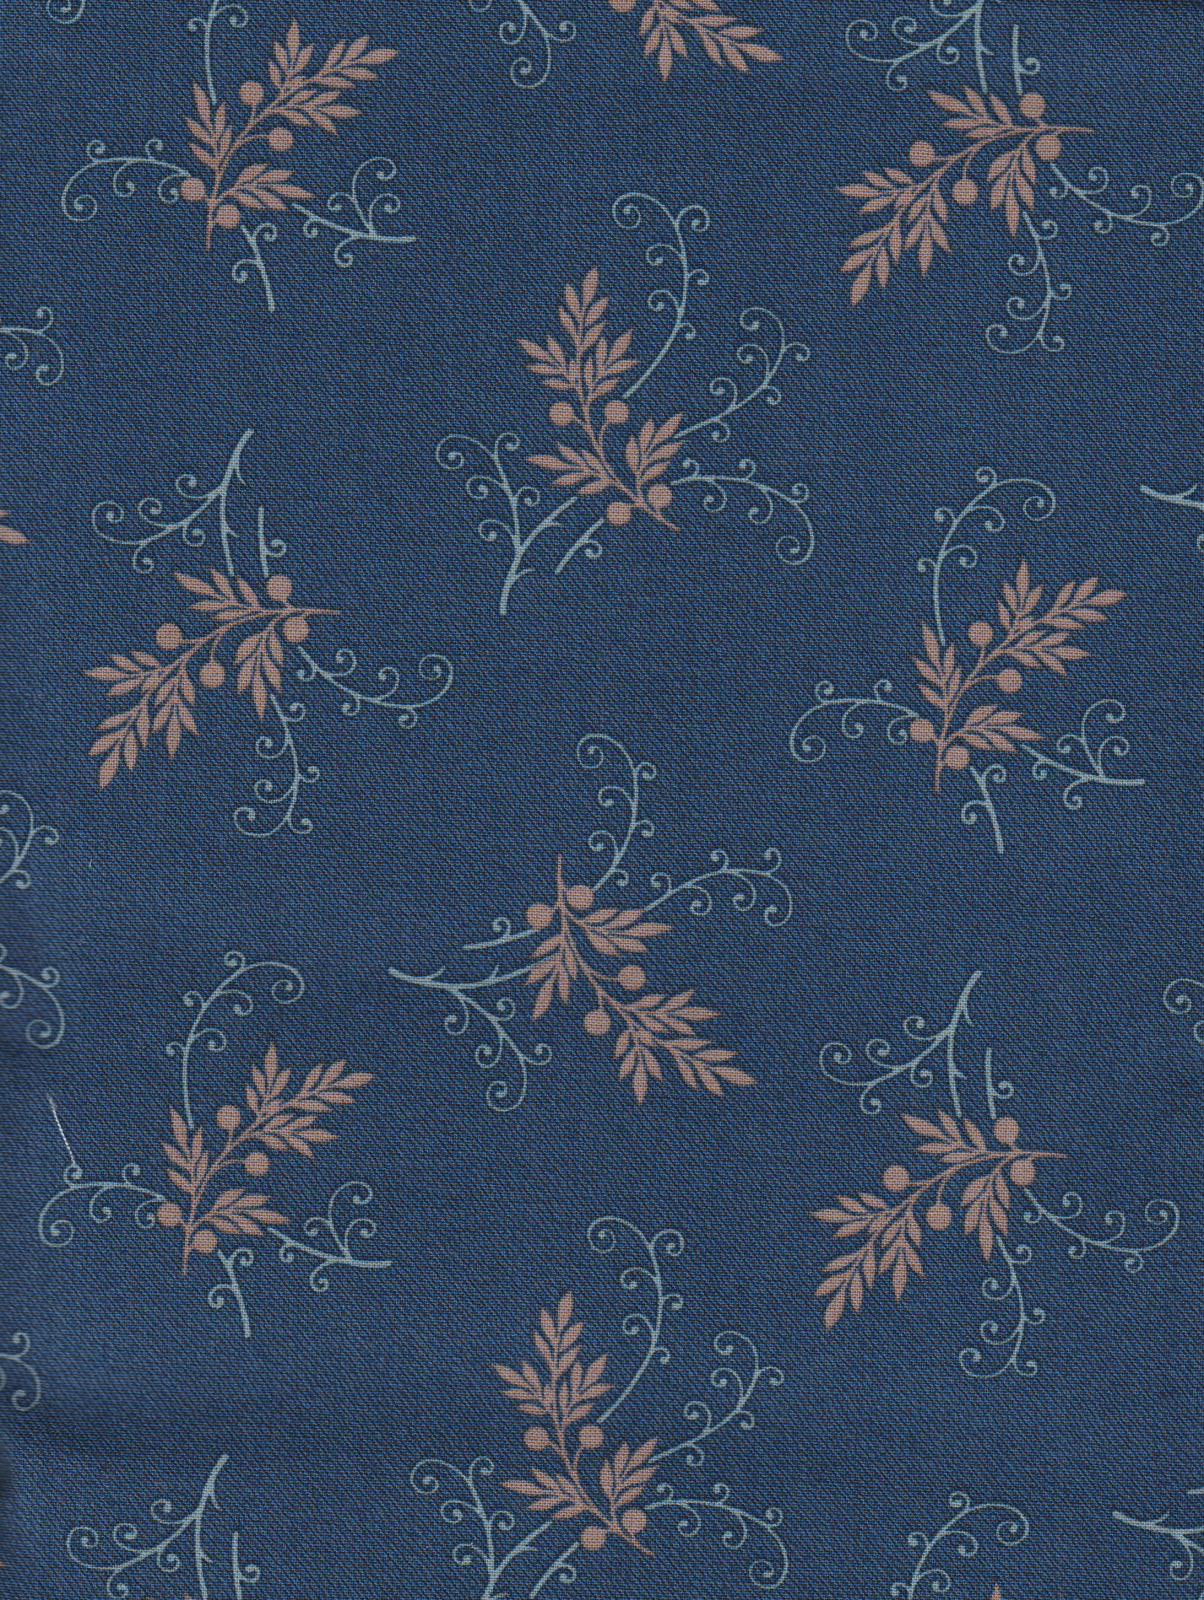 PROMO* Boundless Pre Cuts - 41627 Navy Scroll